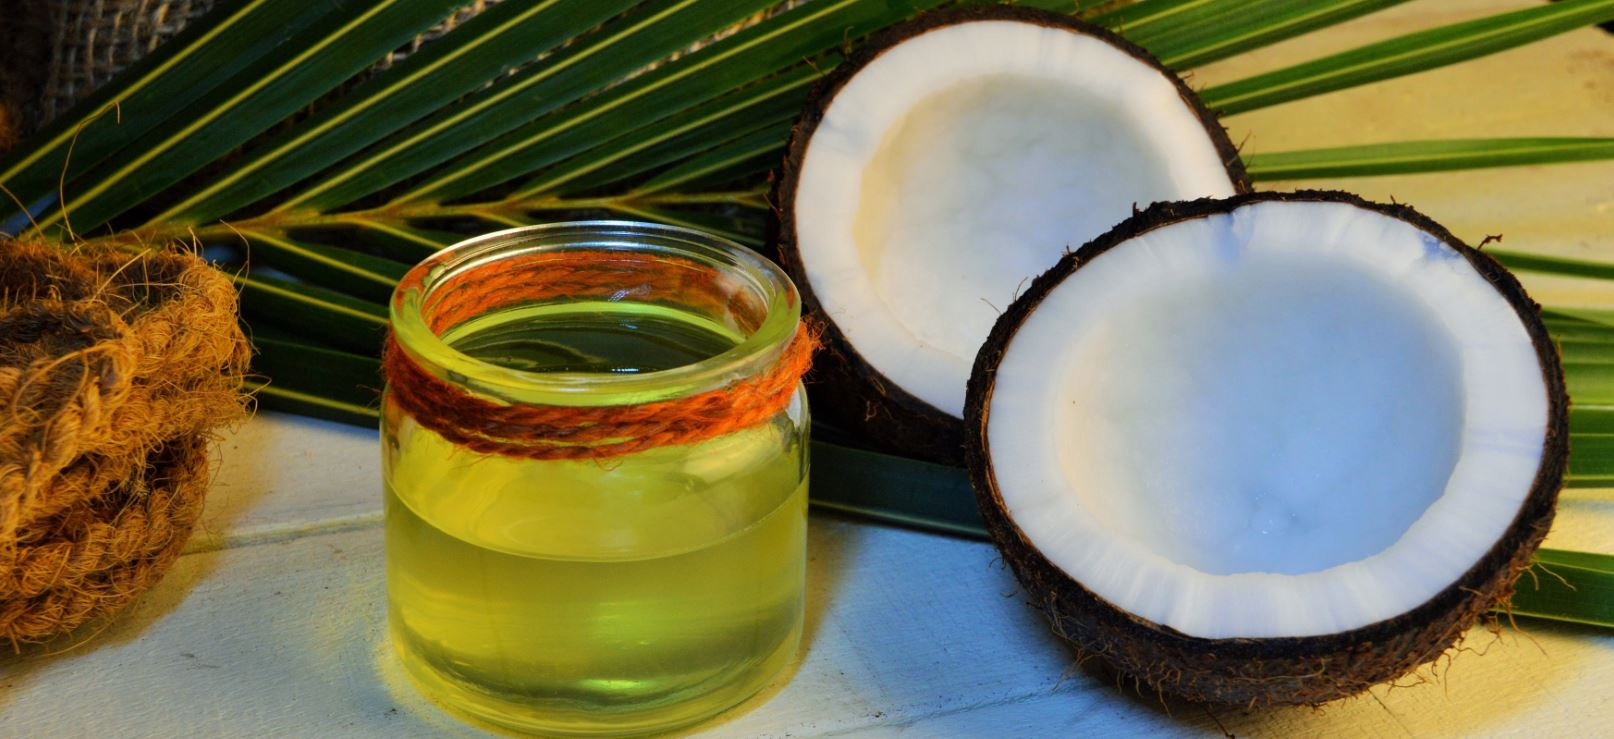 homemade DIY coconut oil as an oil-based lube for having sex - best coconut oil recipe